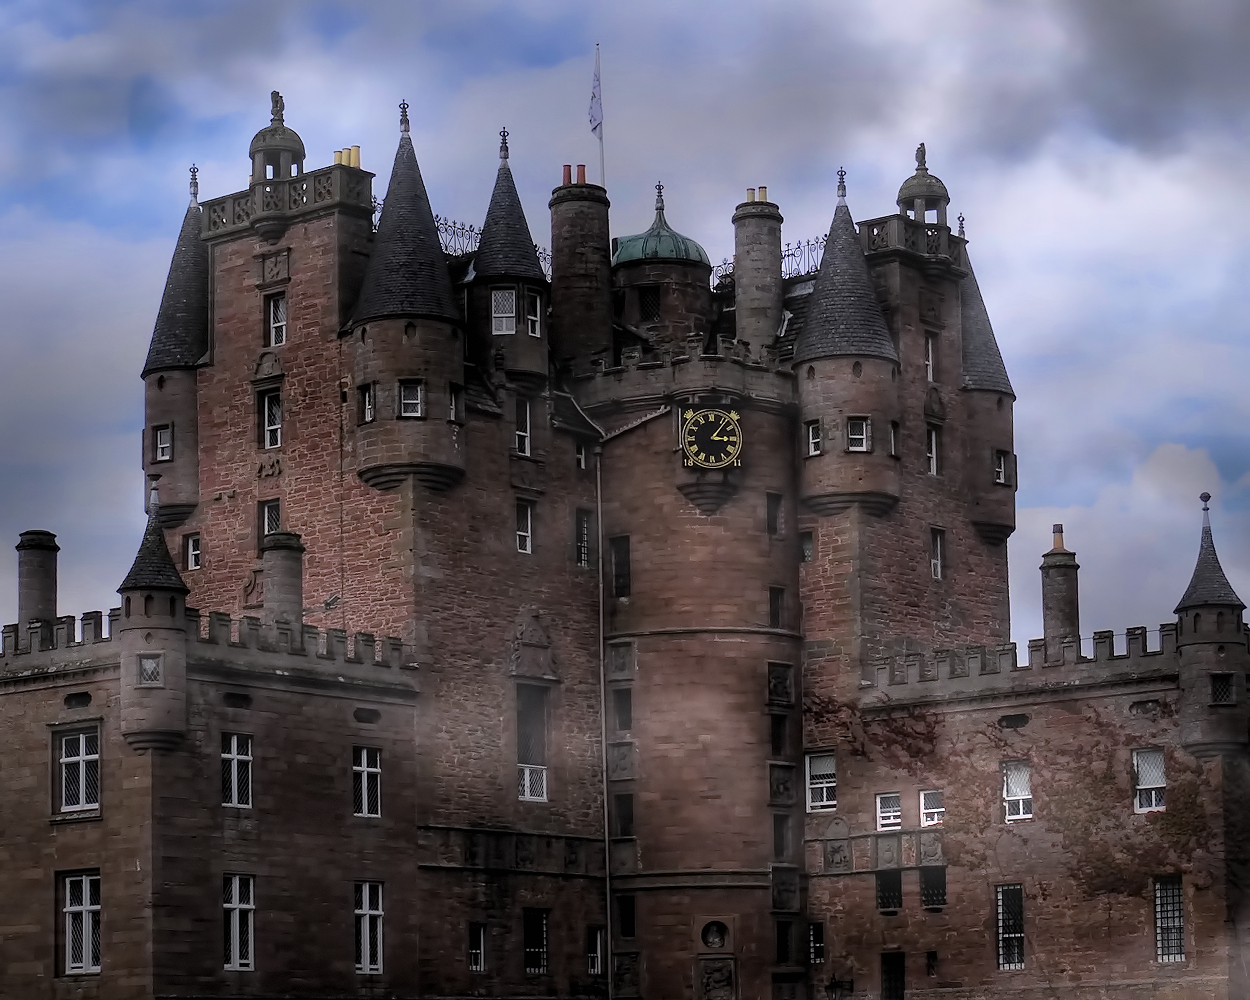 The Ghost of Janet Douglas is said to haunt Glamis Castle.